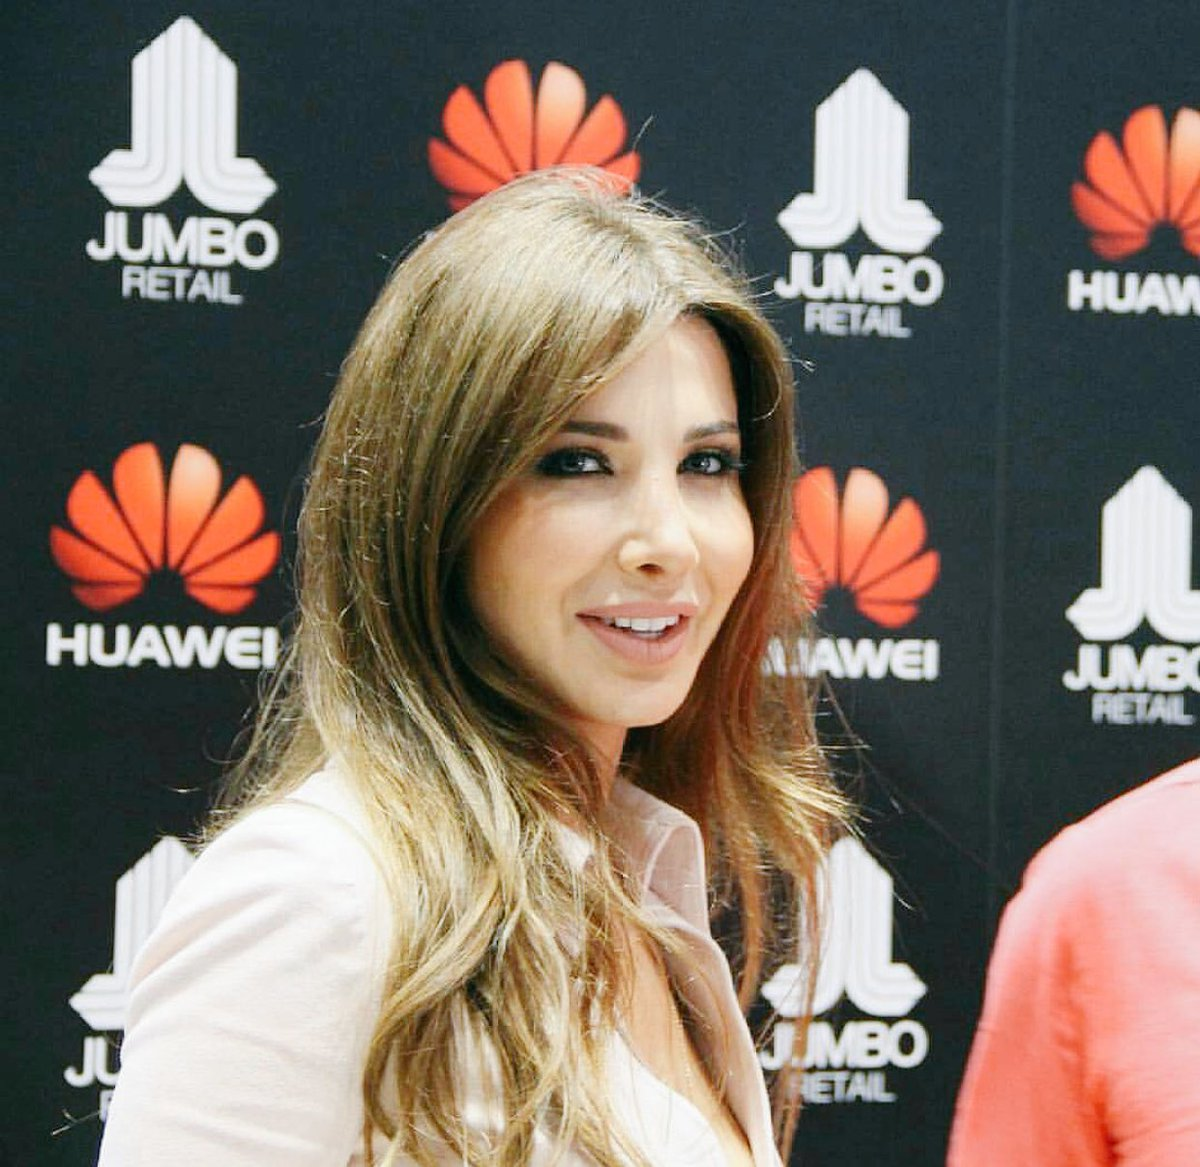 http://s2.picofile.com/file/8261592850/HuaweiMate8_Event_9_.jpg